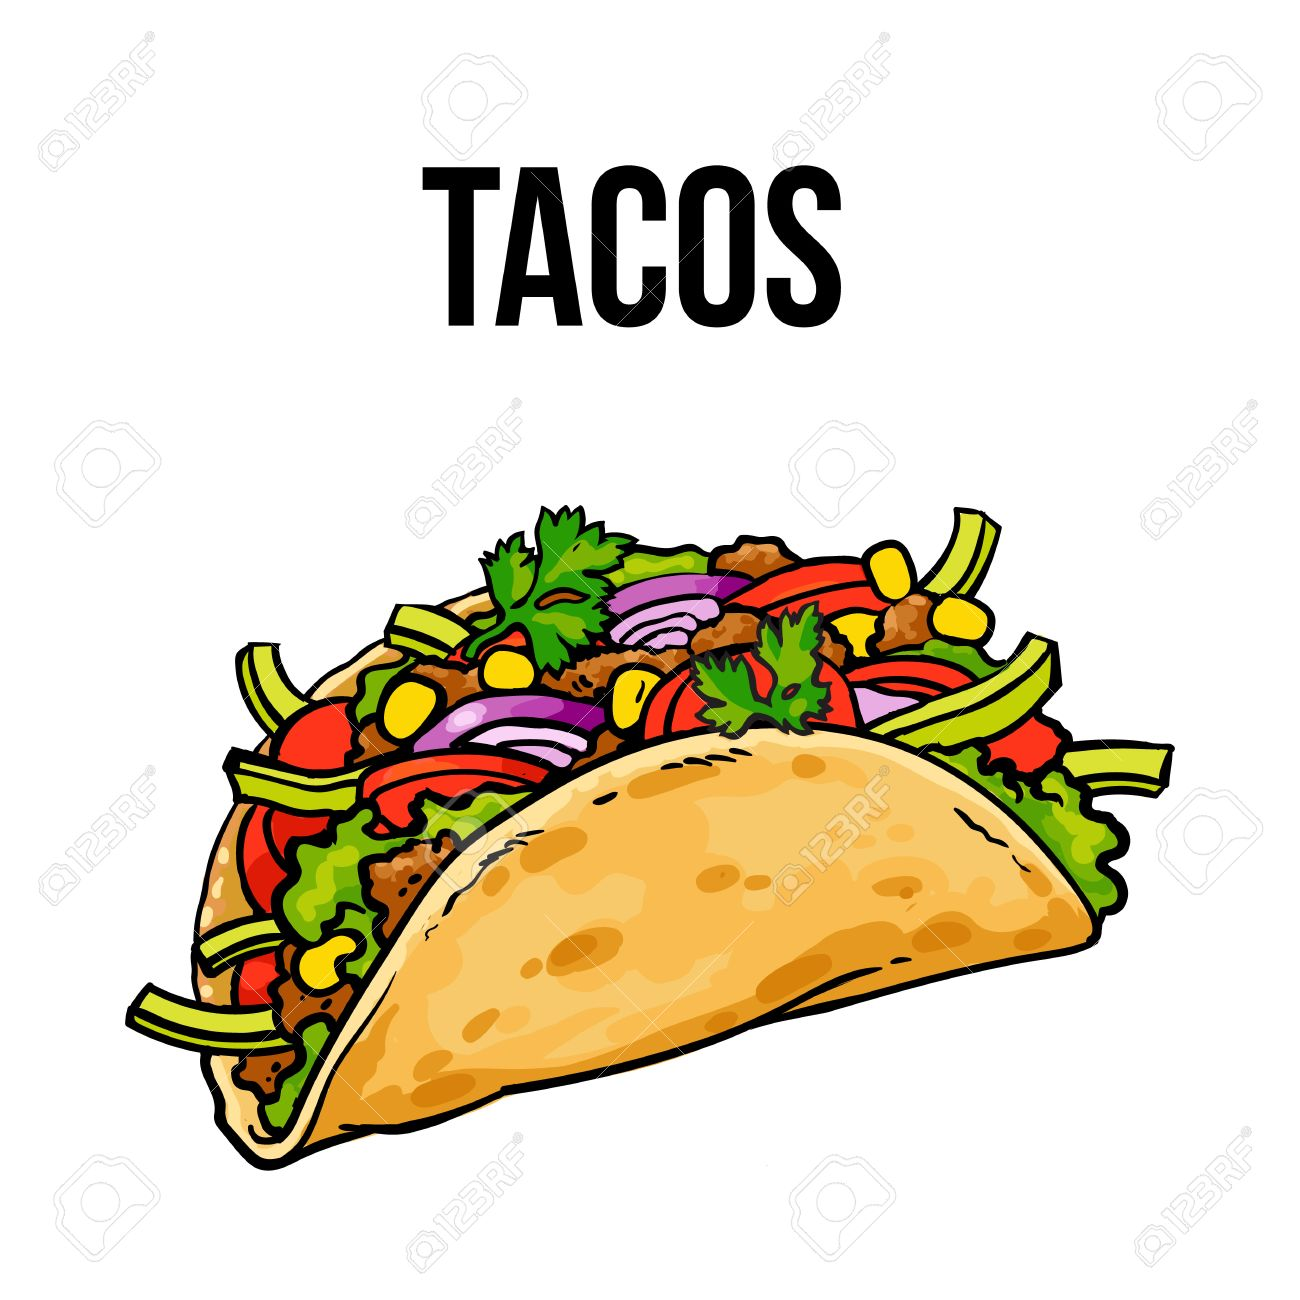 Taco Traditional Mexican Food Ground Meet With Vegetables In Royalty Free Cliparts Vectors And Stock Illustration Image 67895370